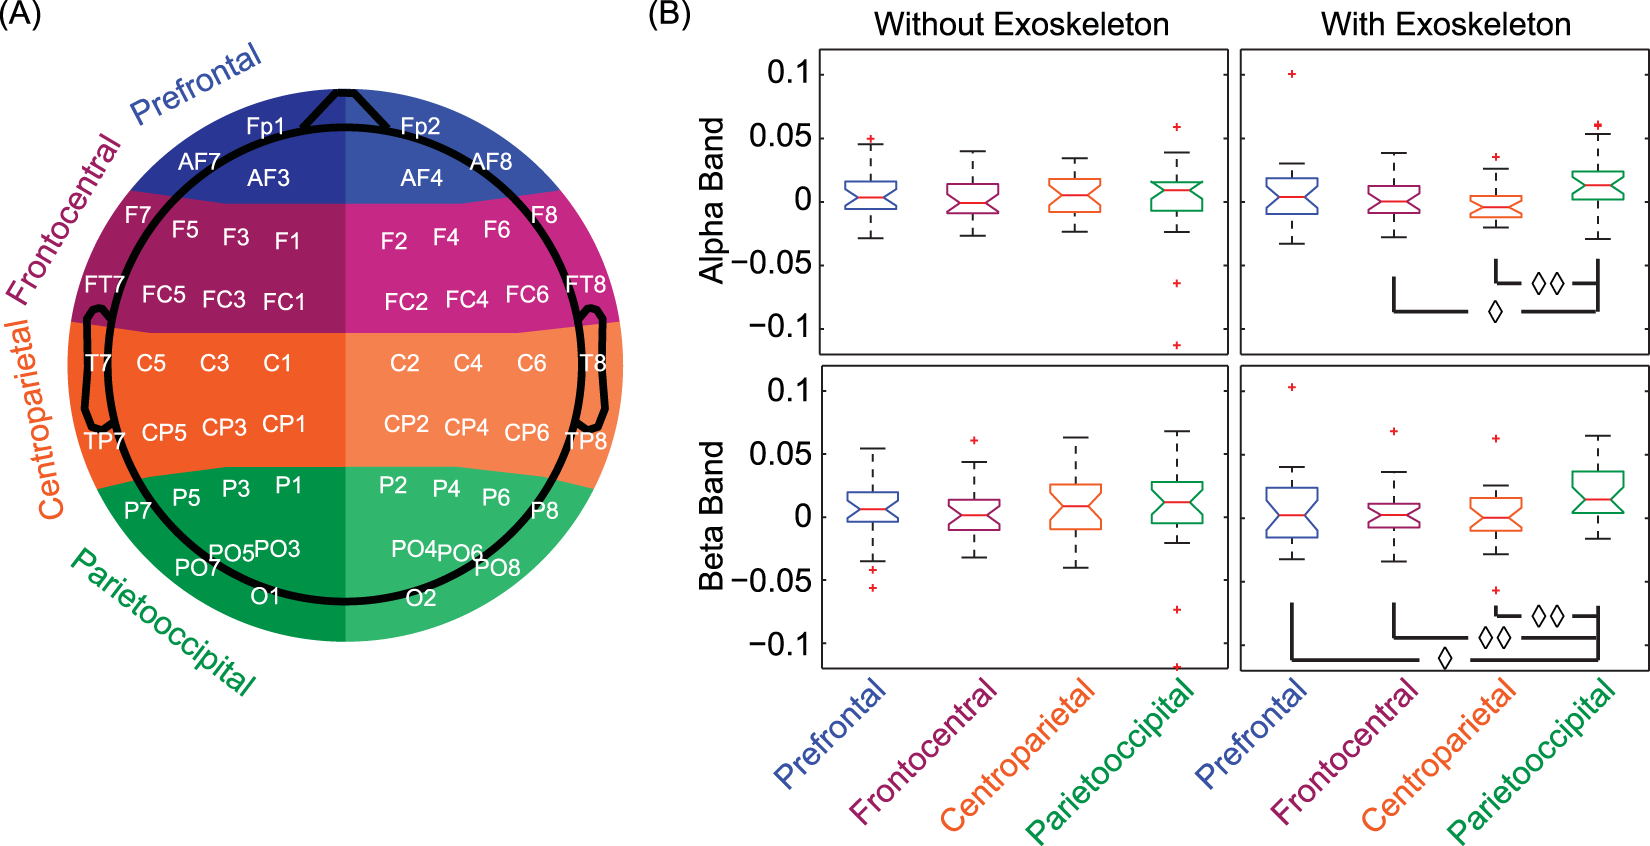 Unilateral Exoskeleton Imposes Significantly Different Hemispherical Passive Networks Intuitive Explanation For Filters Electrical Effect In Parietooccipital Region But Not Other Regions Scientific Reports